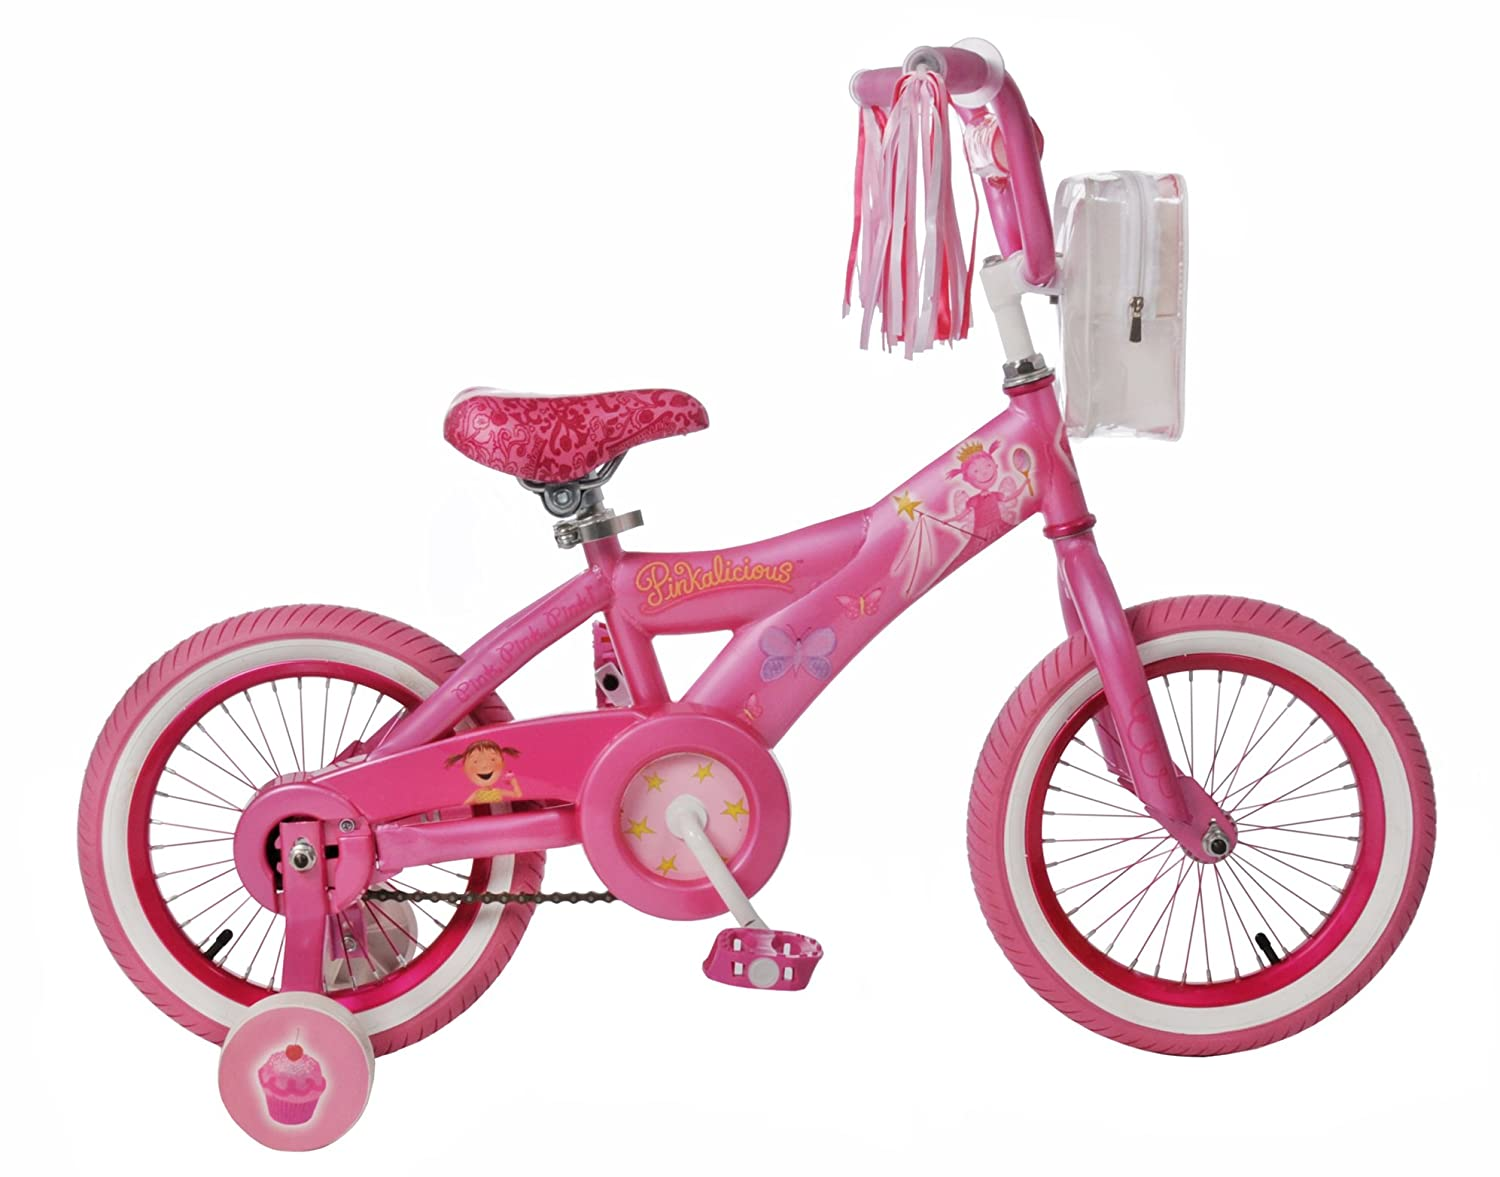 Pinkalicious Girls' Bike